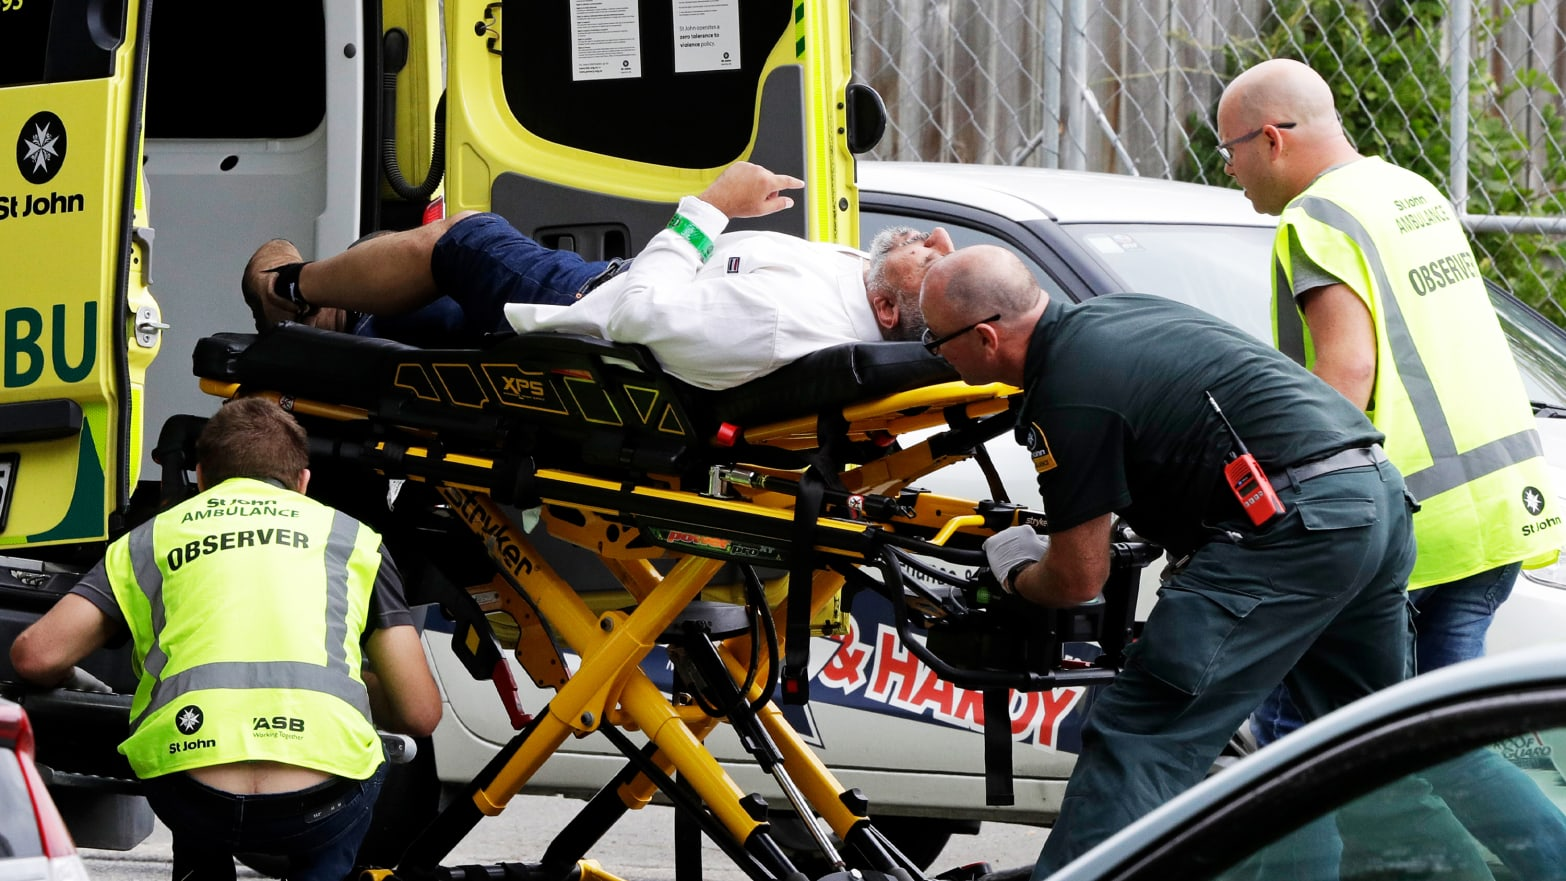 New Zealand mosque shooting claims 40 lives